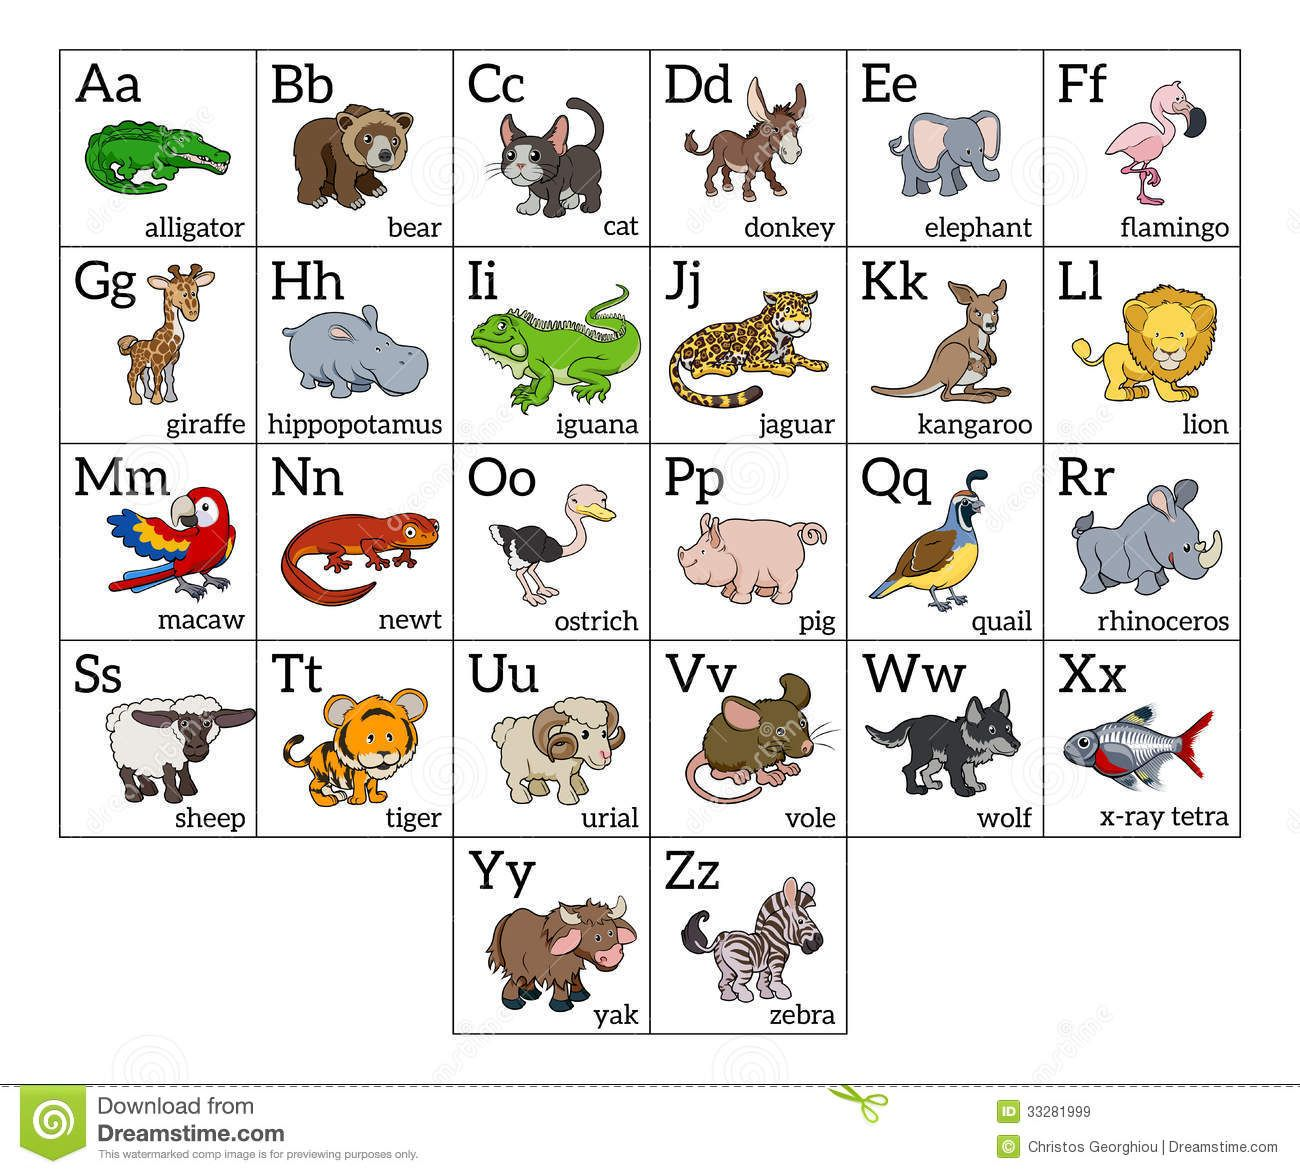 Cartoon Animal Alphabet Chart Animal Alphabet Alphabet Charts Lettering Alphabet